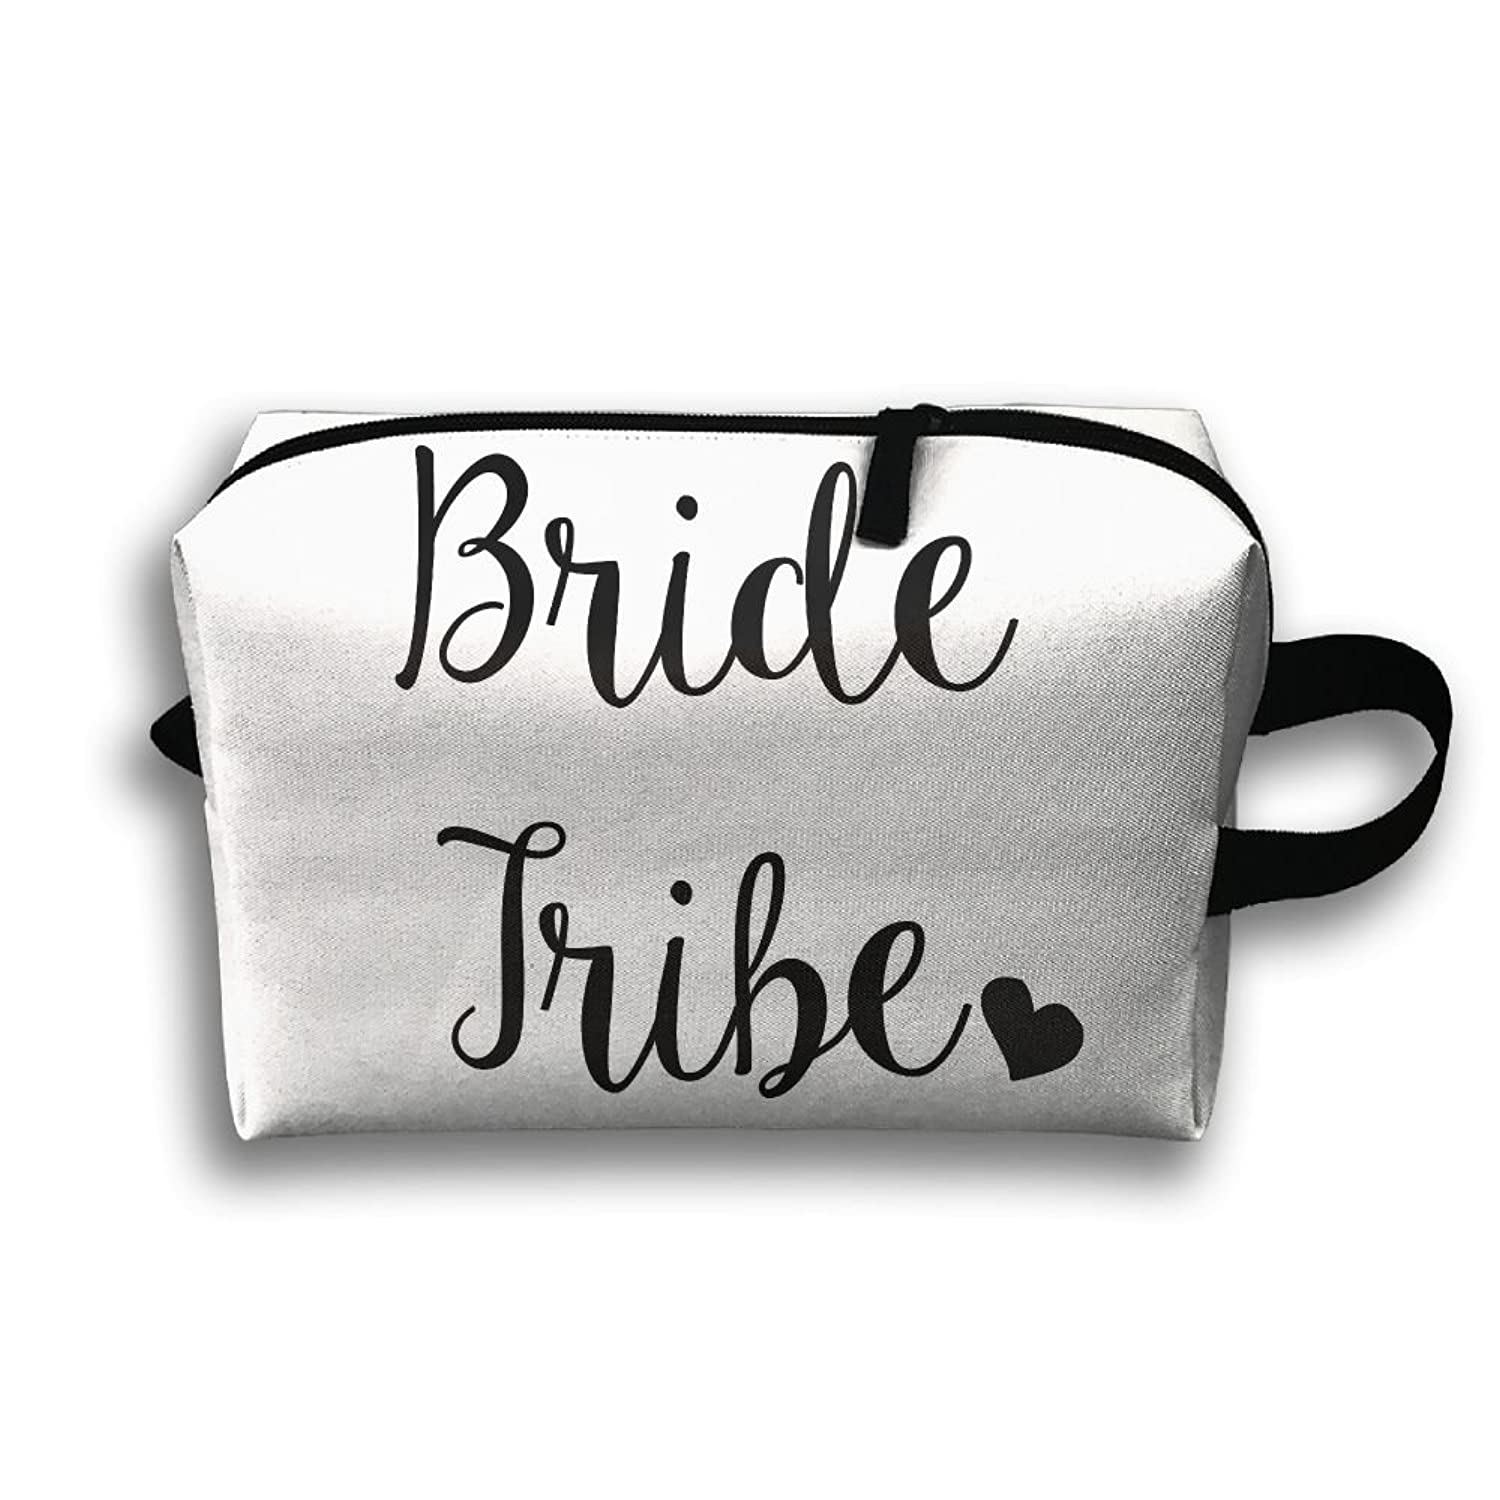 Storage Bag Travel Pouch Bride Tribe Purse Organizer Power Bank Data Wire Cosmetic Stationery Holder